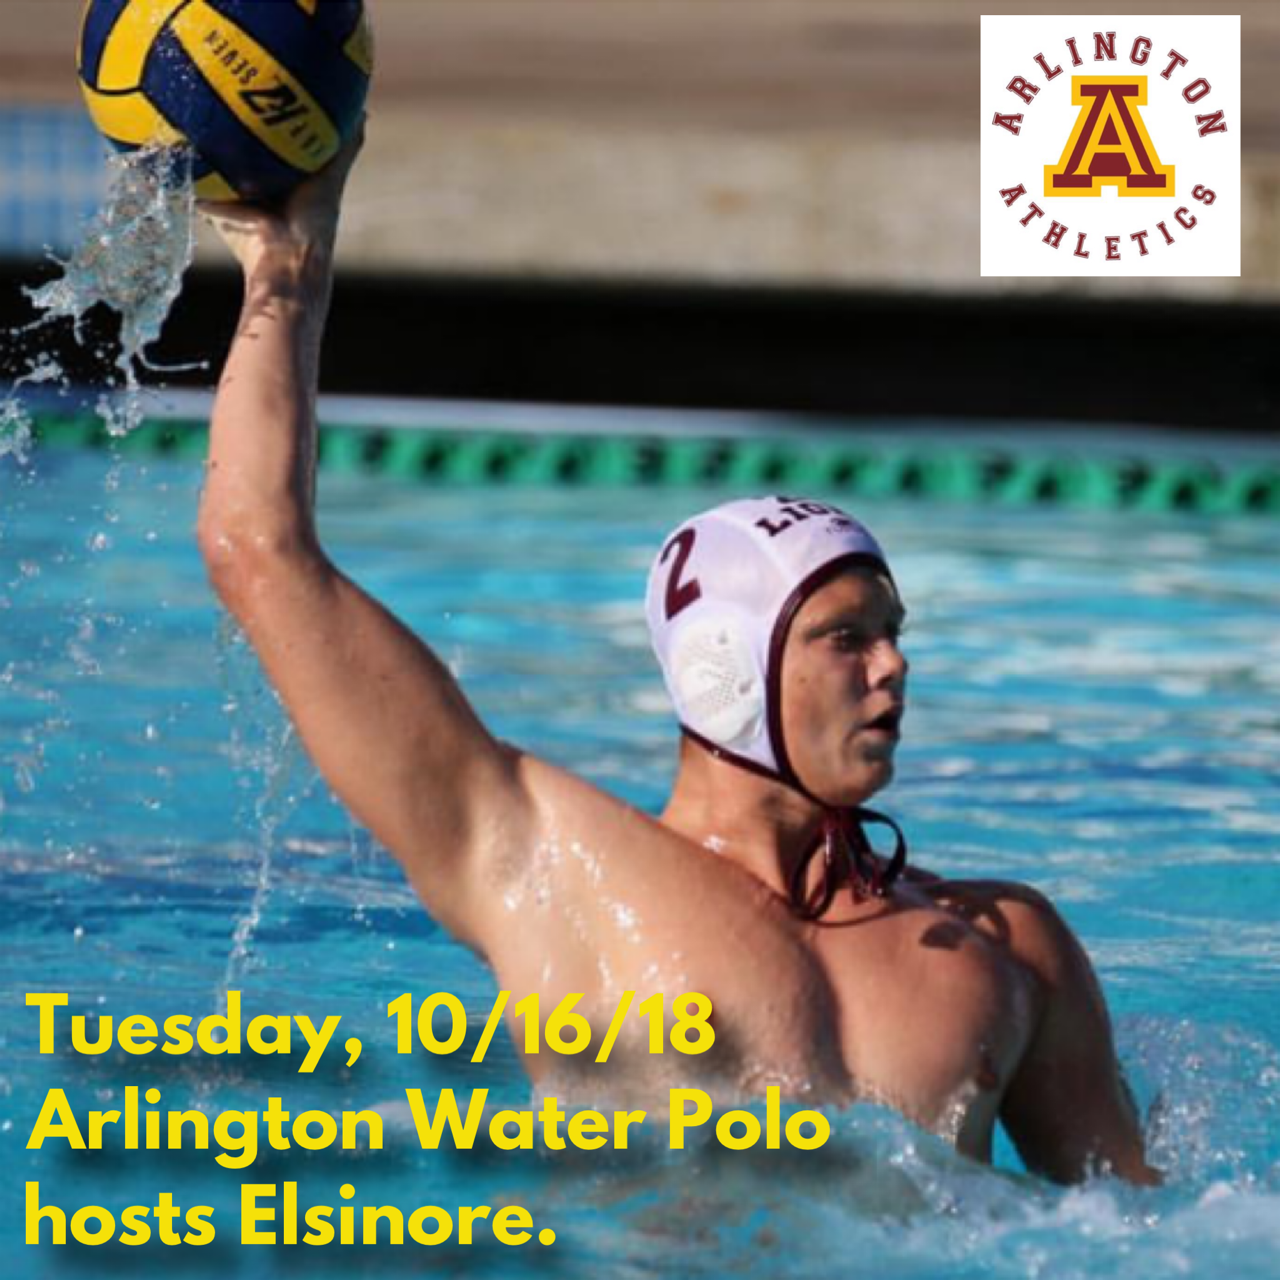 Tuesday, 10/16: Arlington Boys' Water Polo hosts Elsinore H.S. – 3:15 p.m.